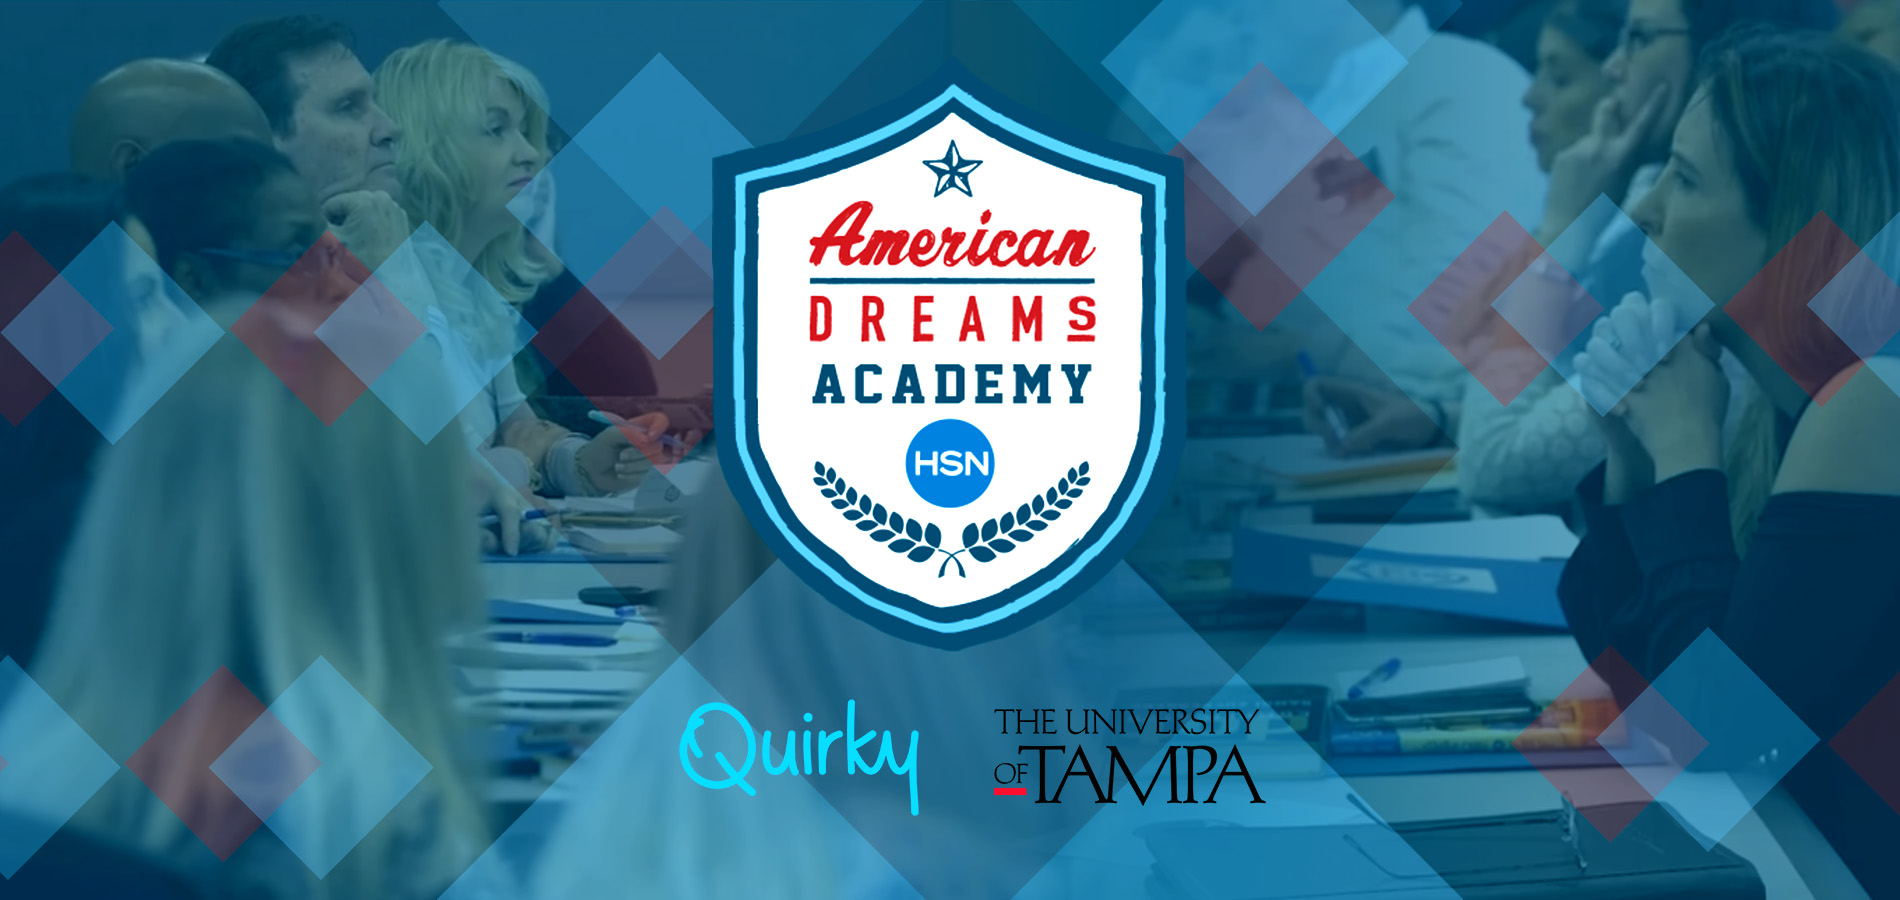 Students at a table with the American Dreams Academy logo superimposed